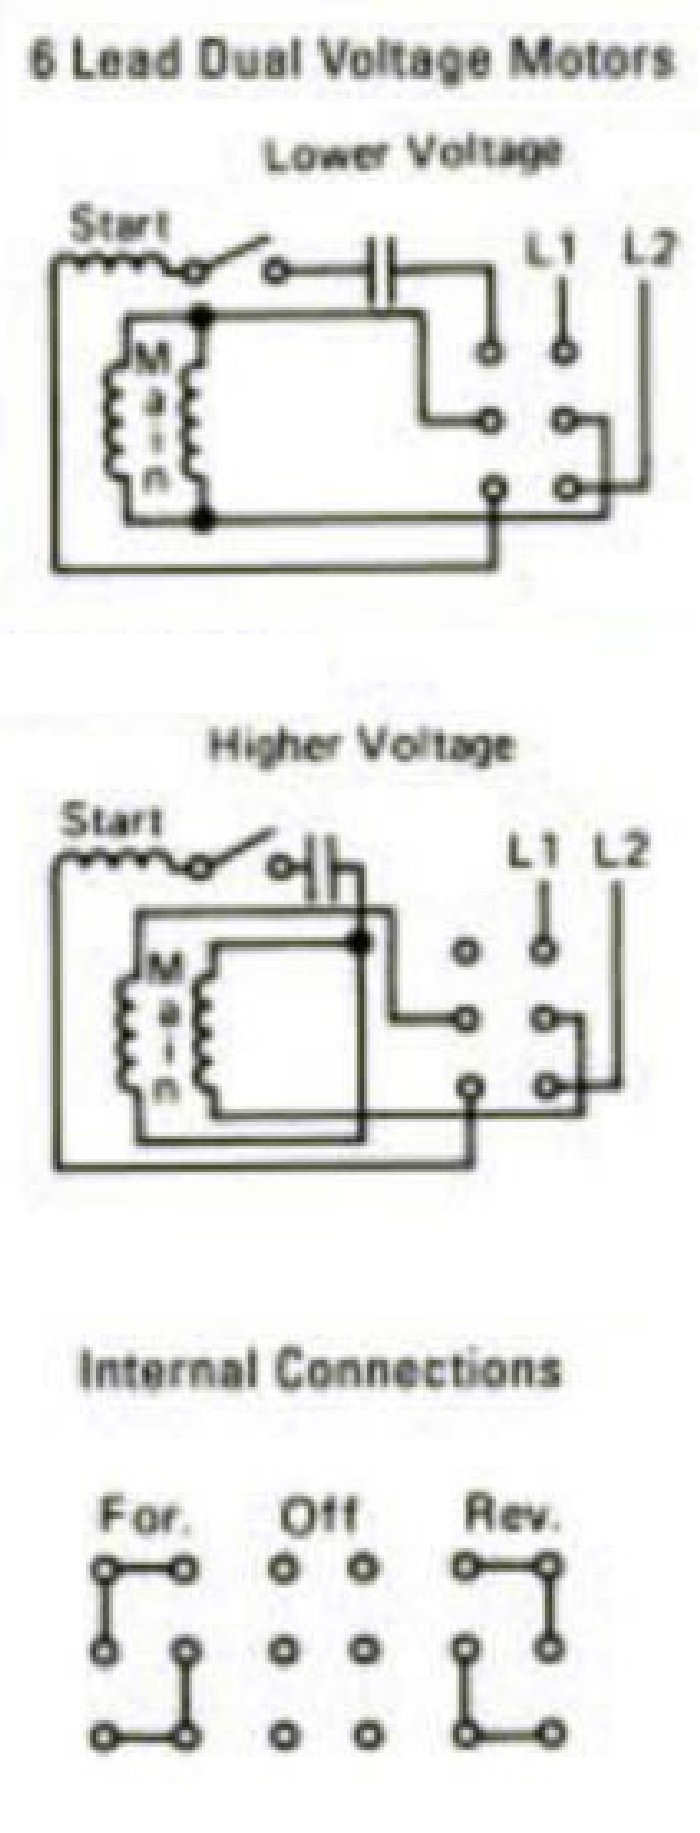 6 lead drum sw wiring bremas switch wiring diagram how to wire a boat lift switch to a  at n-0.co